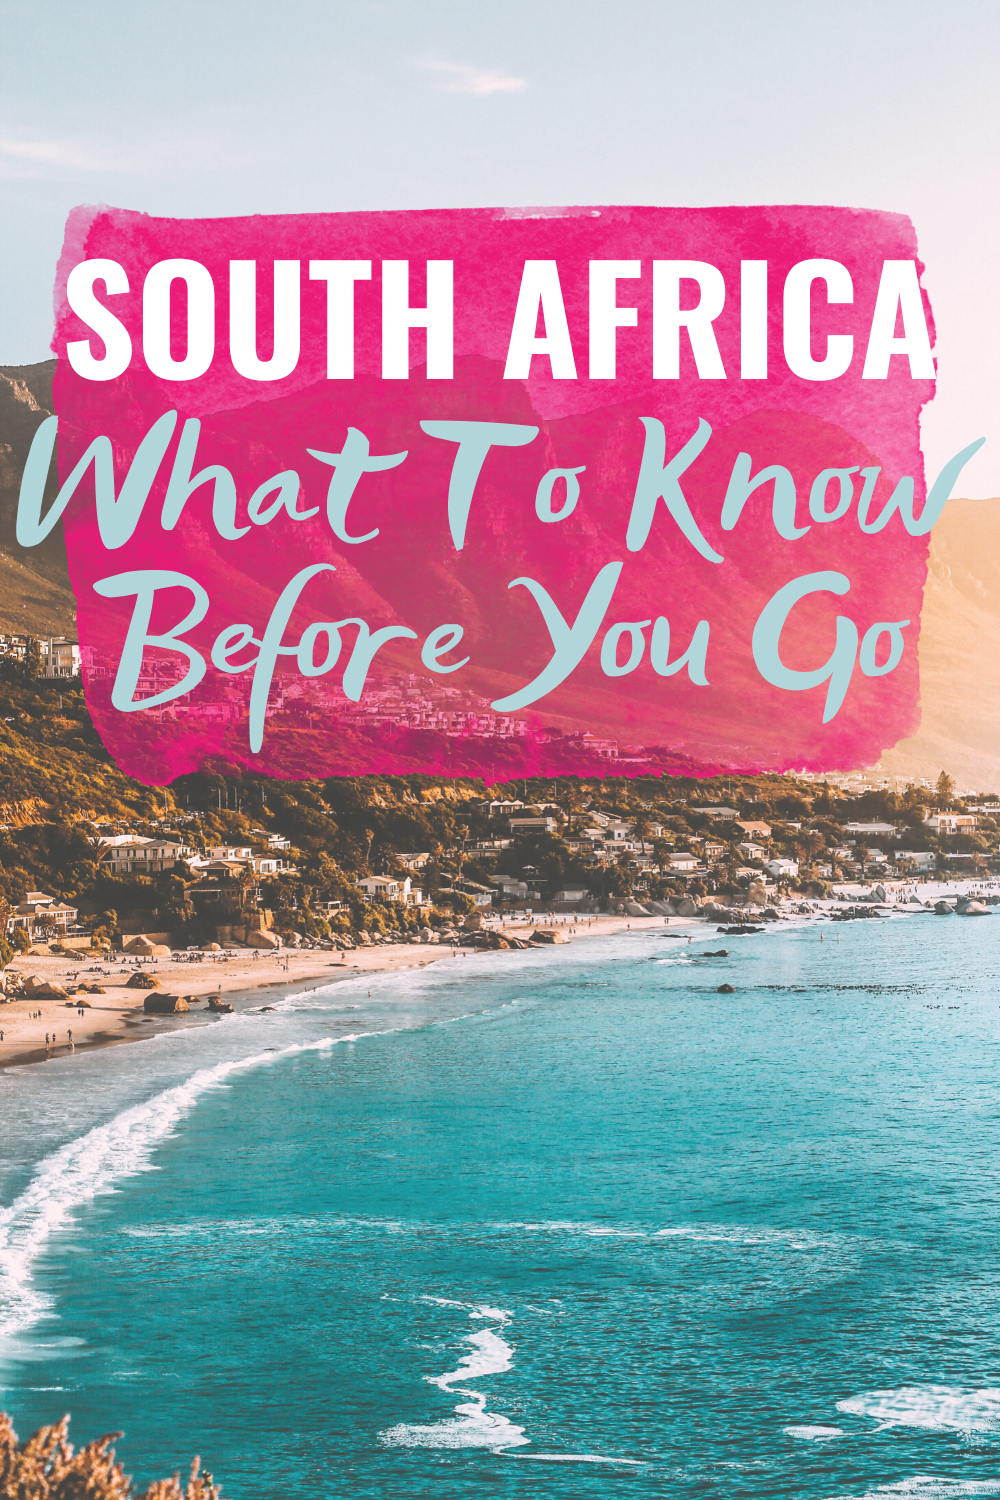 South Africa Travel: Things To Know Before You Go - Before leaving for South Africa, here are some travel tips to know before you go, including what you might want to bring with you, mentally prepare yourself for + more! | South Africa Travel - Travel Tips for South Africa - Traveling to south Africa for Americans - Africa Travel Tips